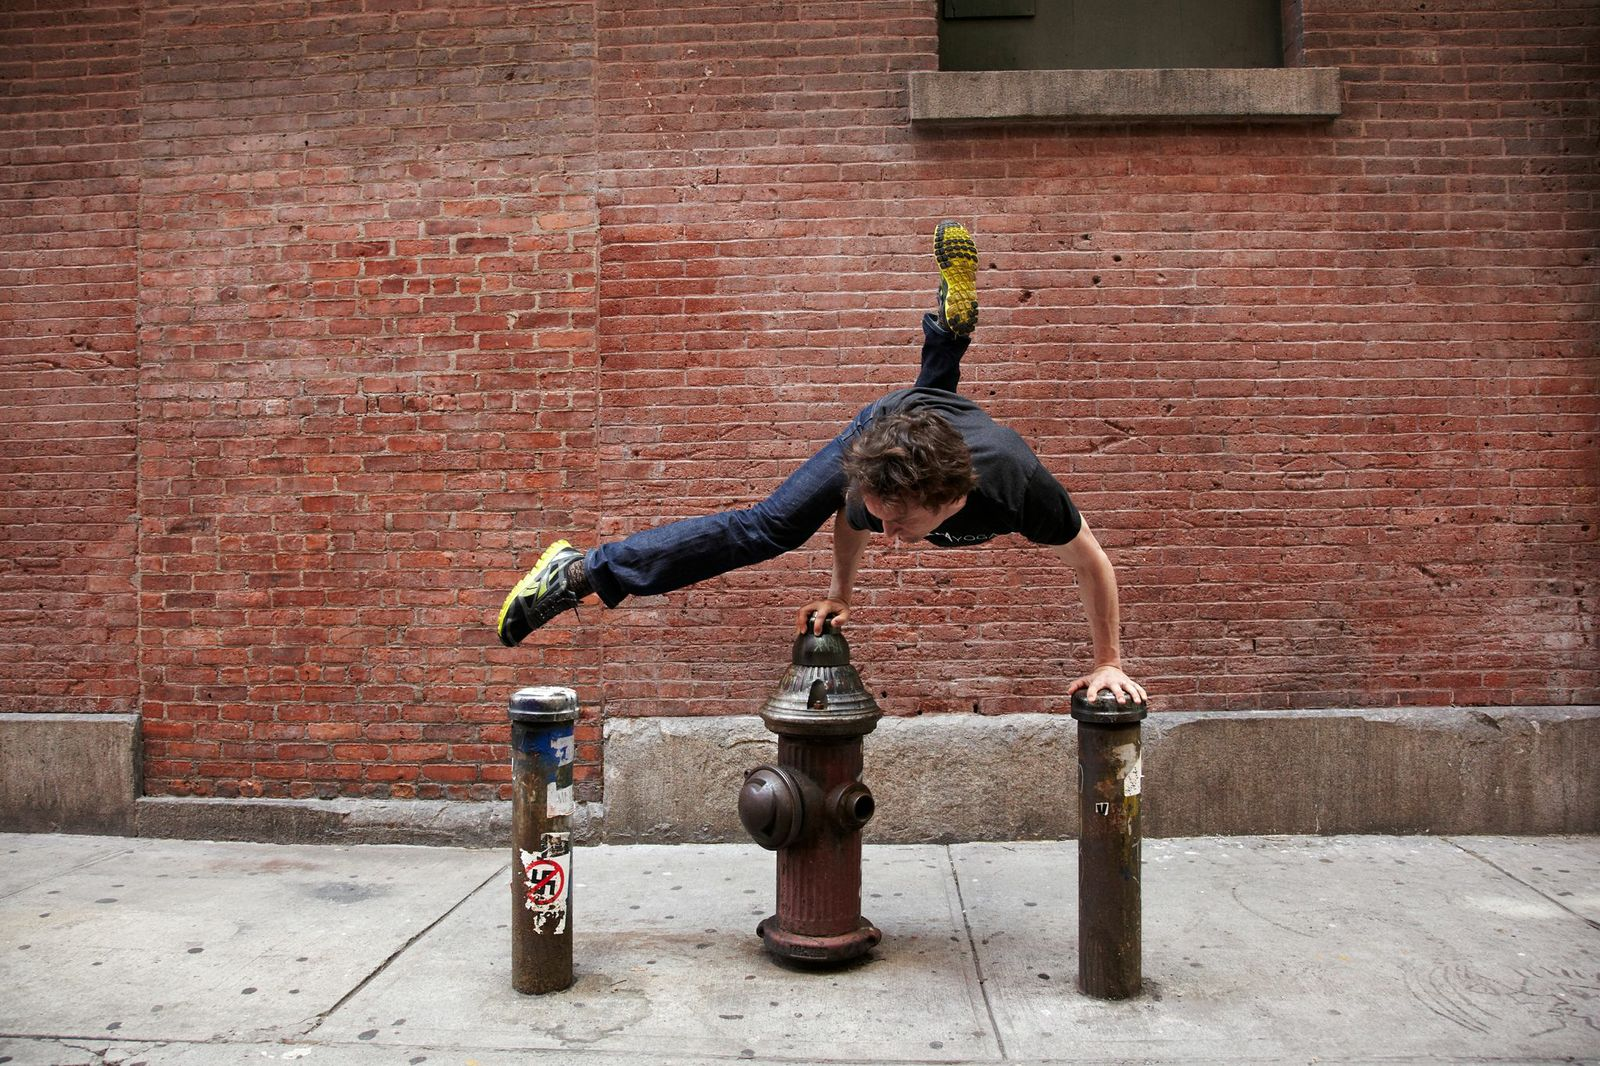 Mike in New York, doing hard things with ease. Photo via Strala Yoga.